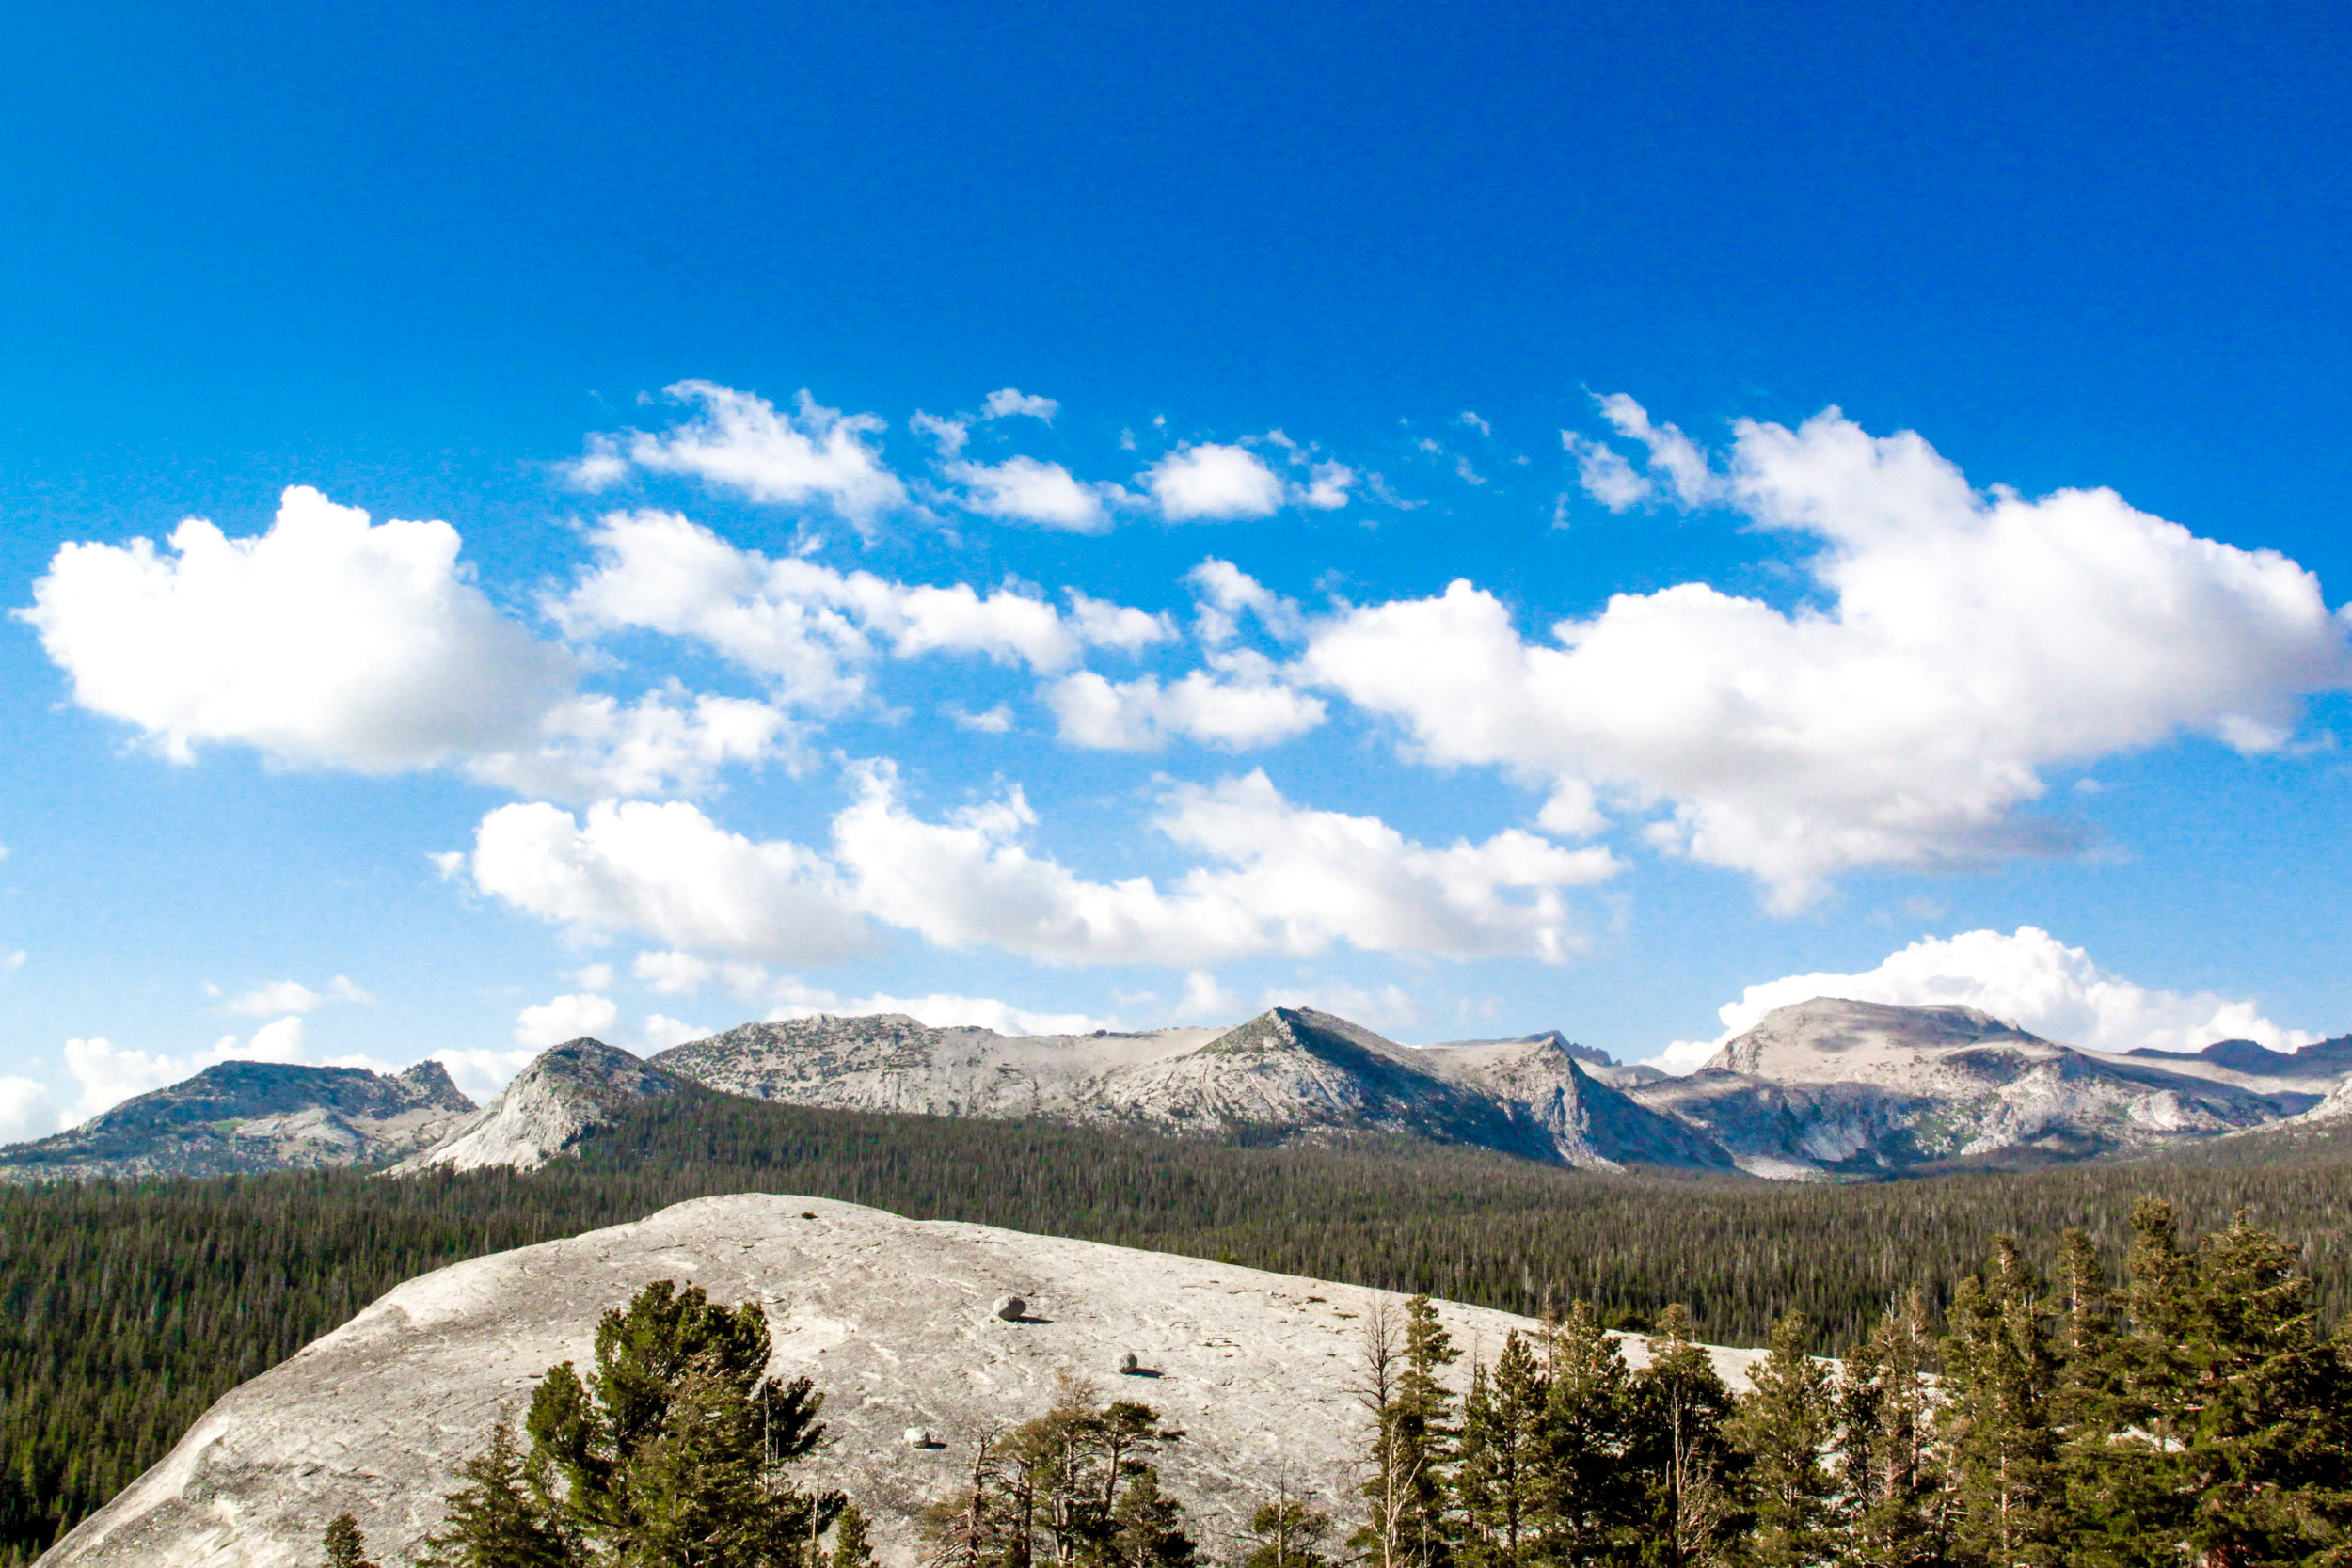 View of Tuolumne Meadows from Lembert Dome, 2012